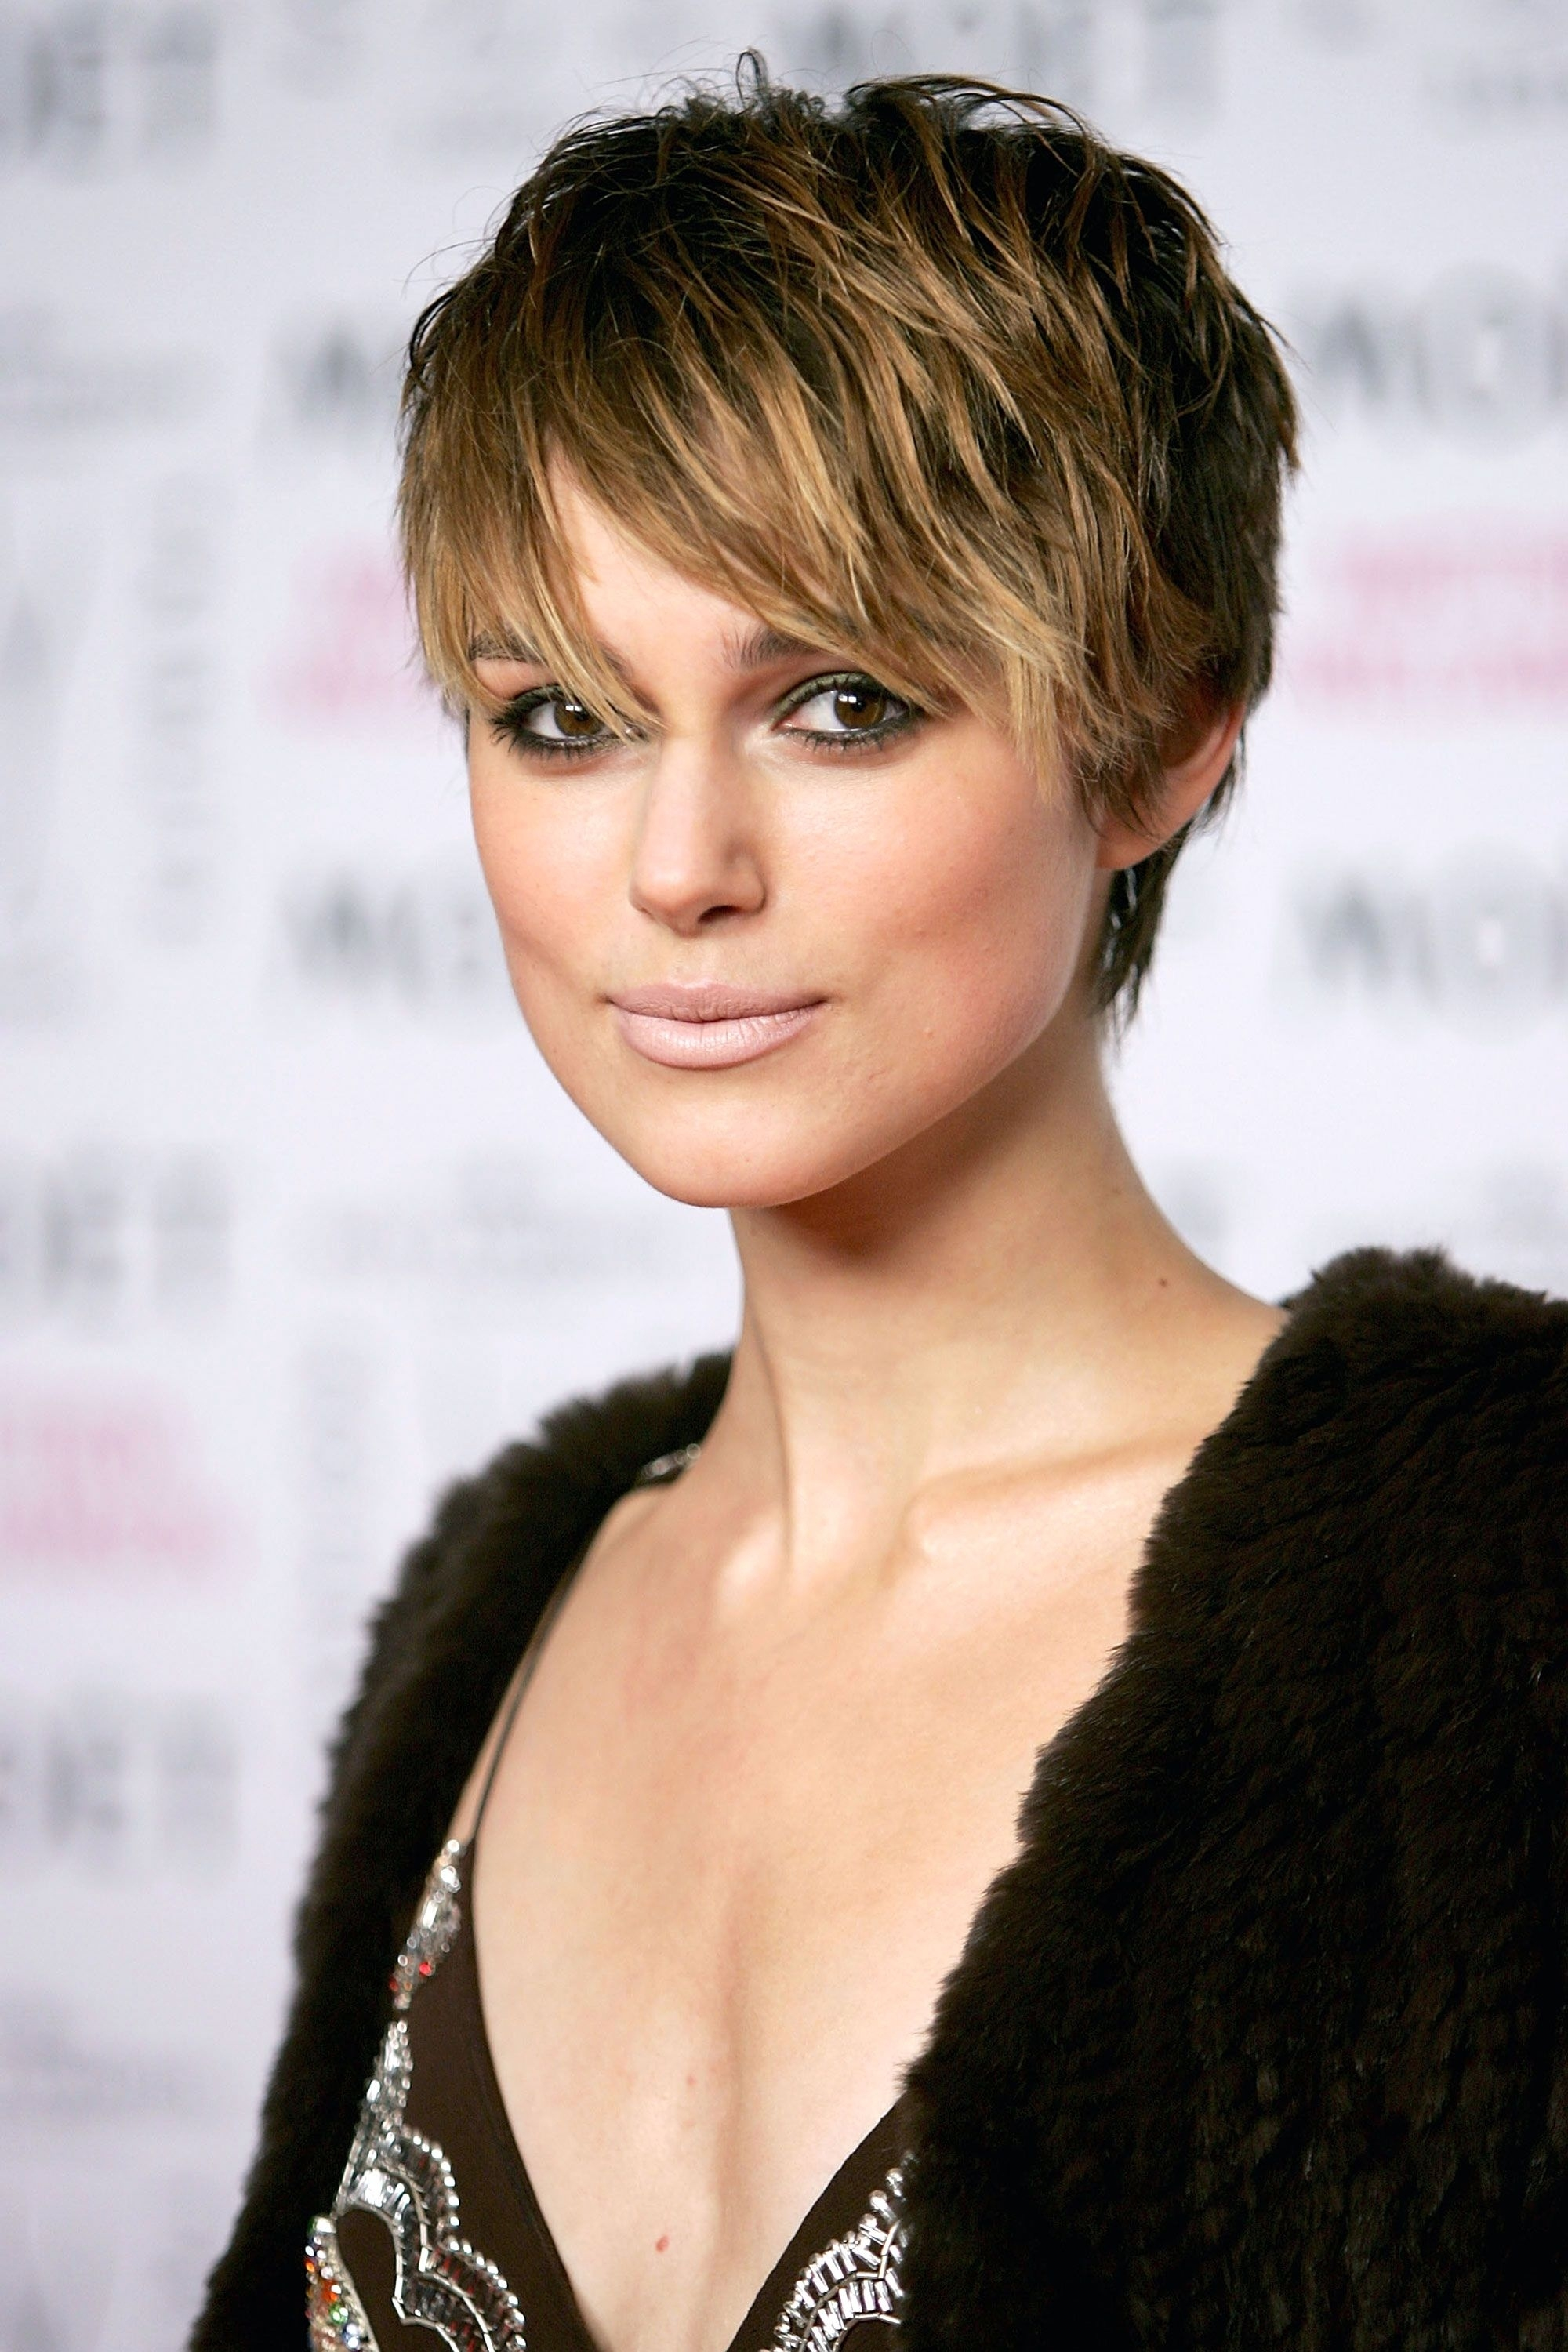 The Top Pixie Haircuts Of All Time | Short Cuts | Pinterest | Pixie throughout Long Pixie Haircut For Square Face